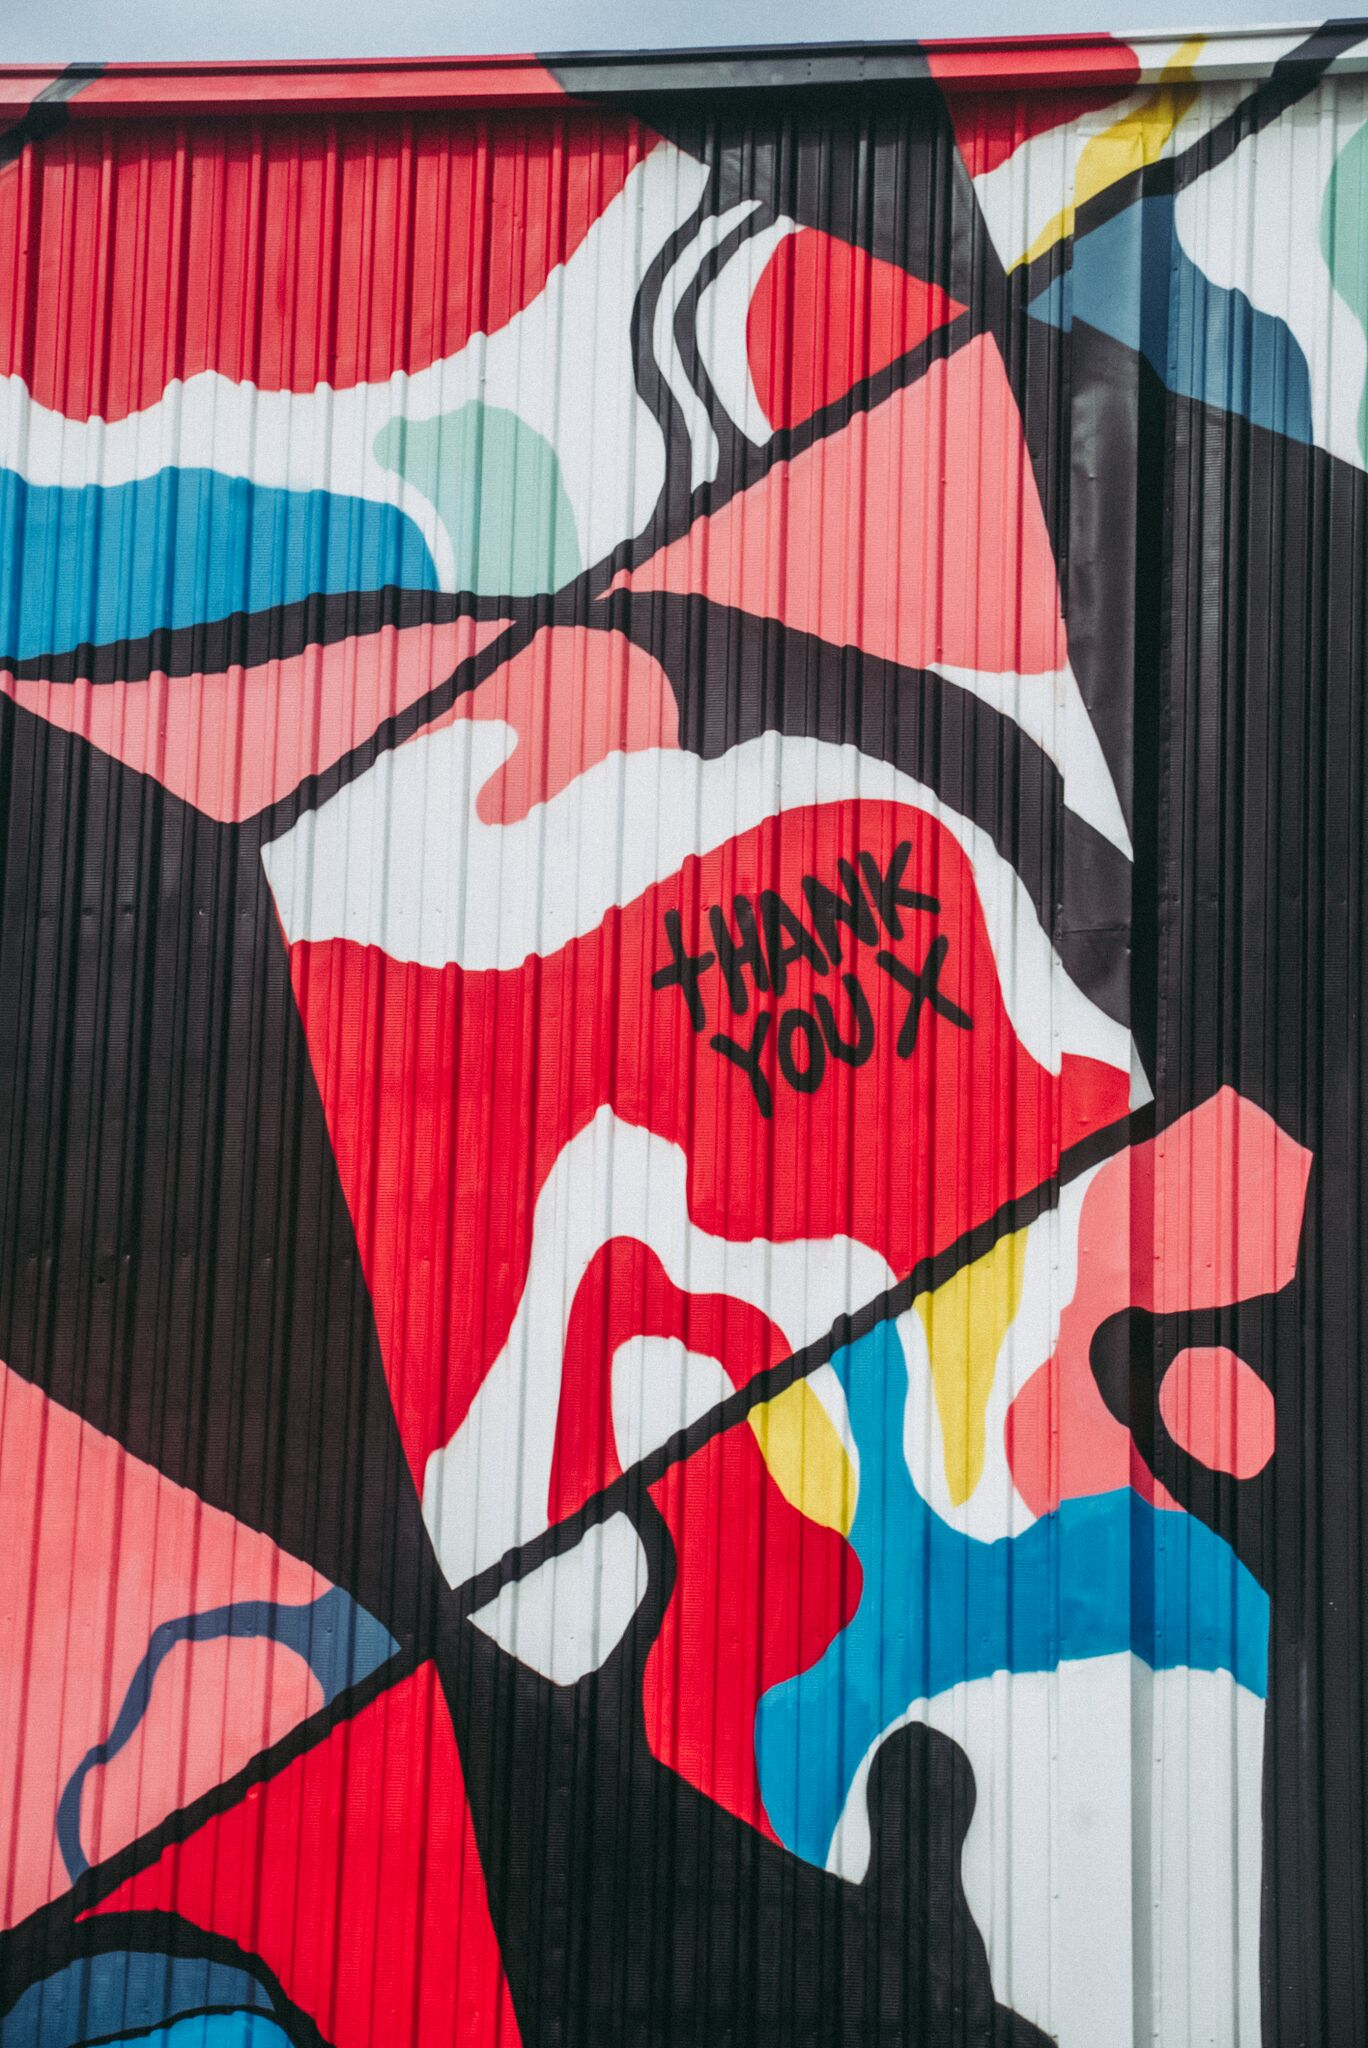 Nychos, LeftyOutThere, ThankYouX – Radius Chicago Mural